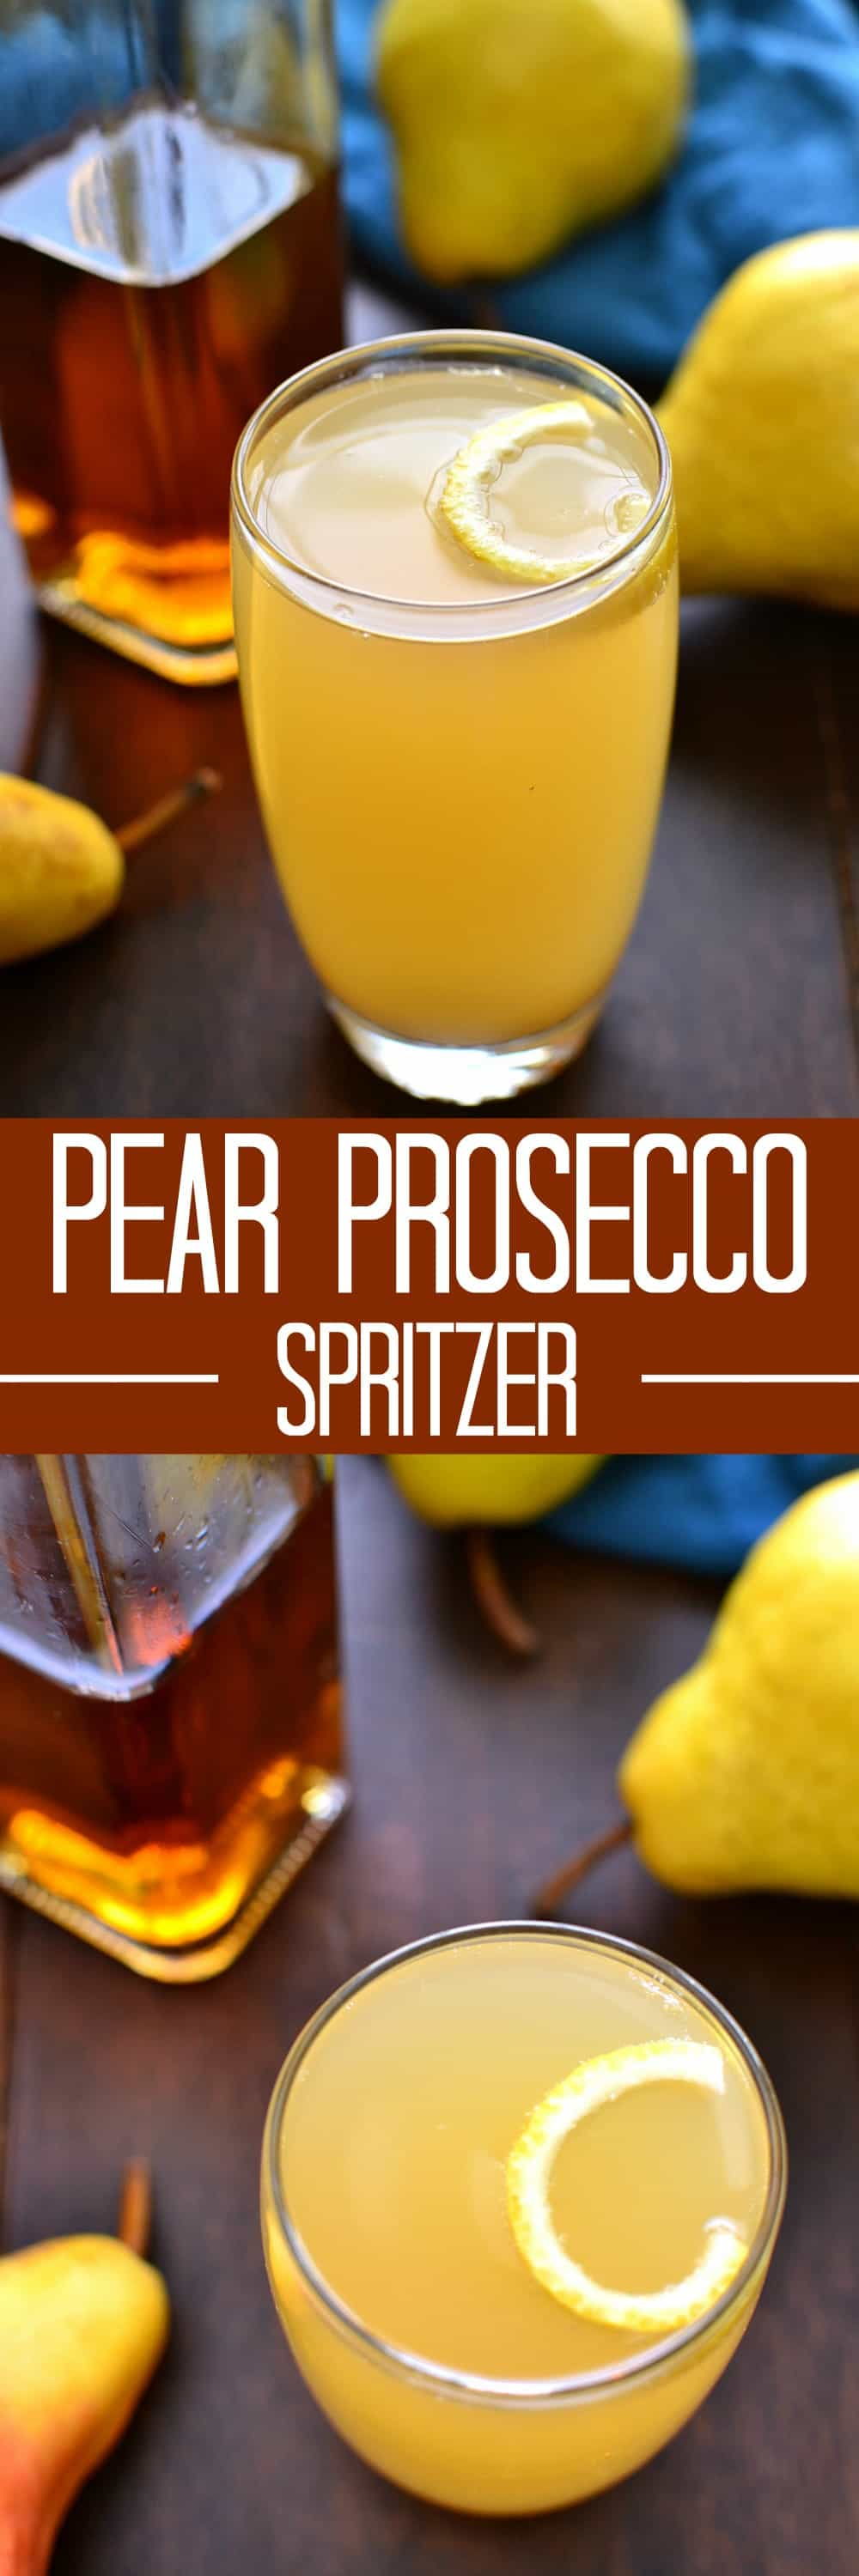 This Pear Prosecco Spritzer is deliciously sweet, simple, and perfect for fall!